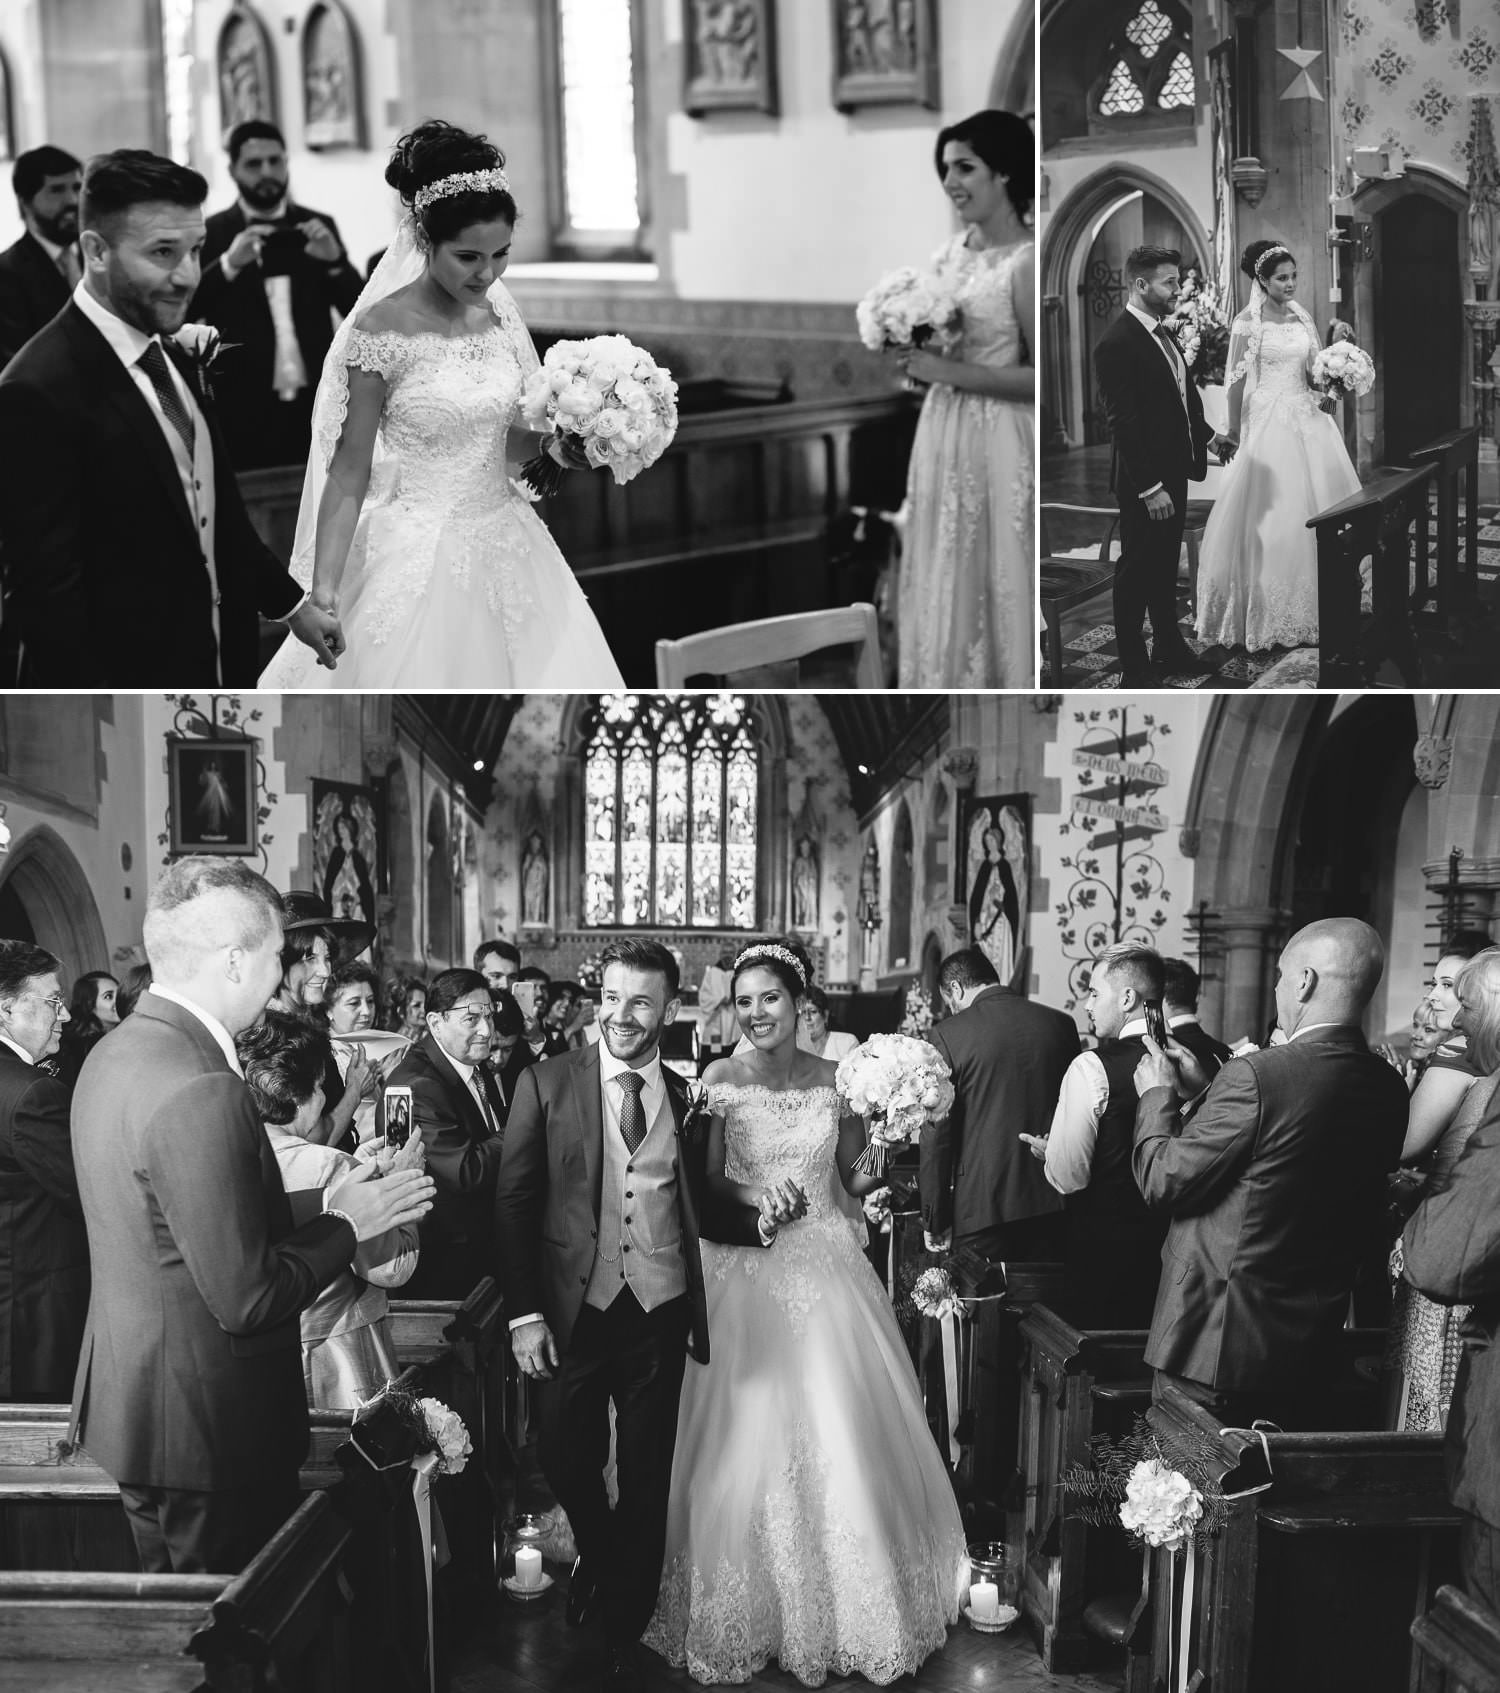 Wedding photography of wedding ceremony of bride and groom in Chester, Cheshire